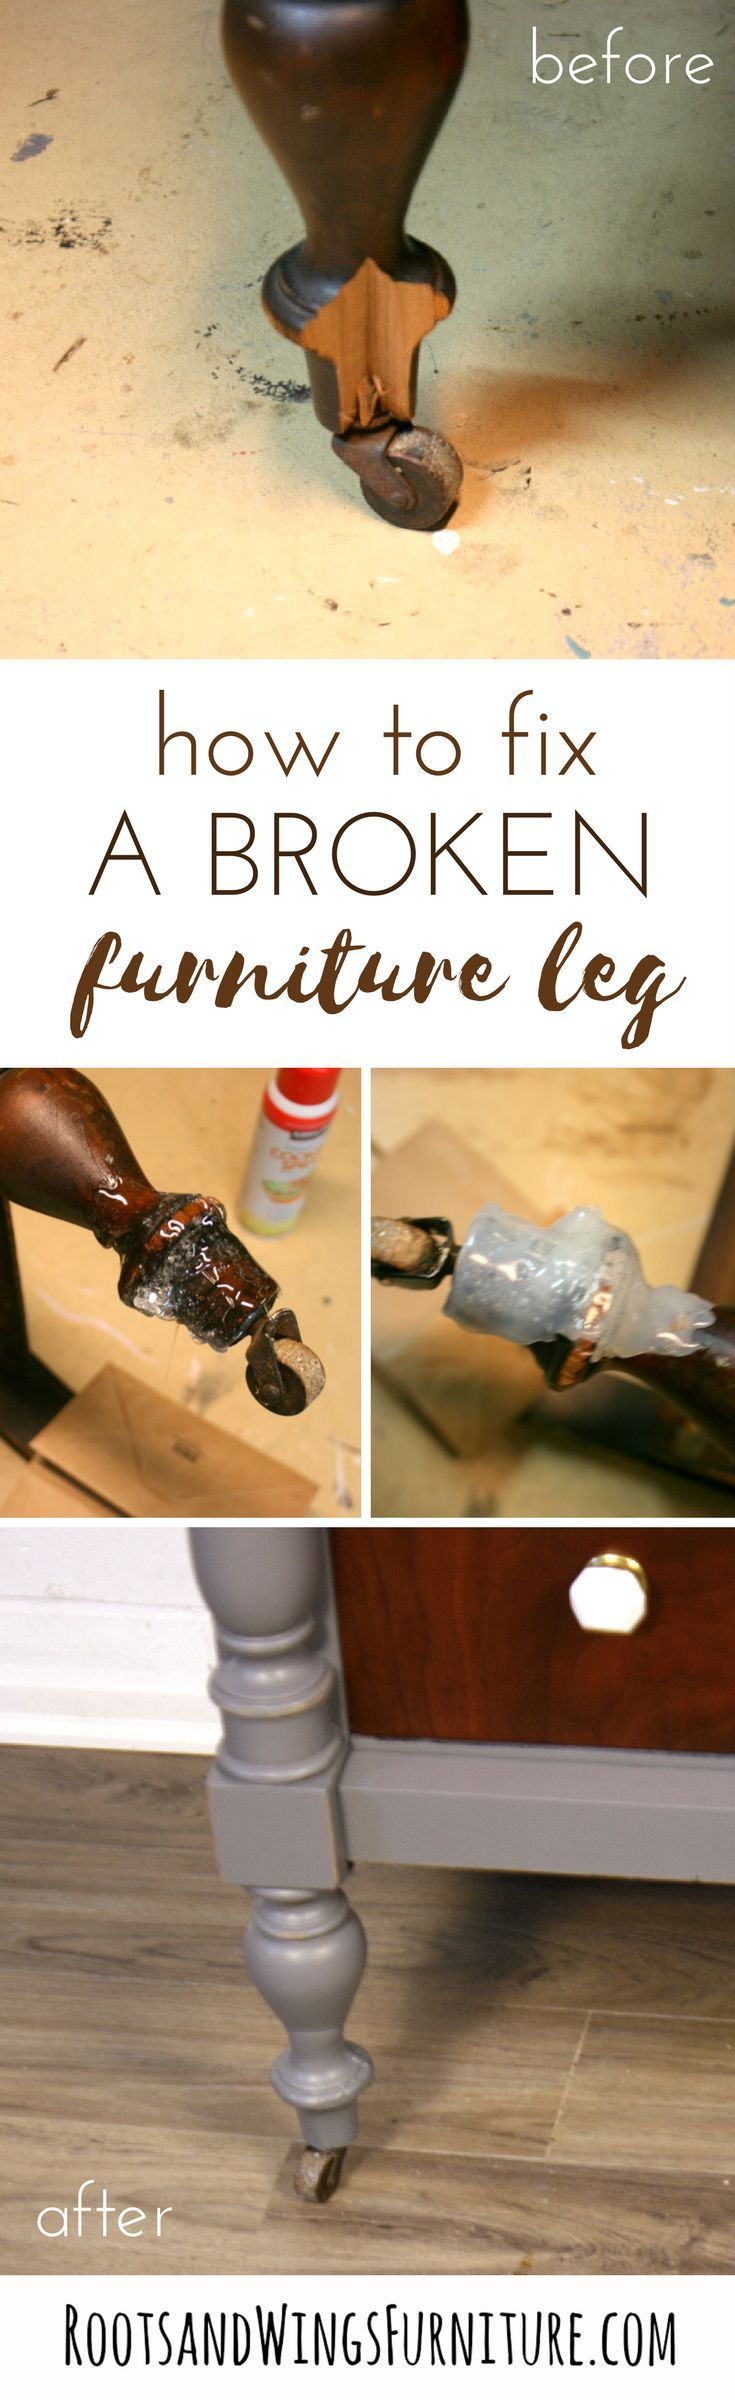 Reparar Muebles Furniture Fix - Furniture Repair Bondo Vs Wood Filler Perfectly Imperfect [mjhdah]http://www.lebron23-23.com/wp-content/uploads/furniture-repair/black-sofa-frame-muebles-tapizados-pinterest-upholstery-vintage-Vintage-Furniture-Repair-sofa-frame-muebles-tapizados-pinterest-upholstery-remodelaholic-step-by-how-to.jpg